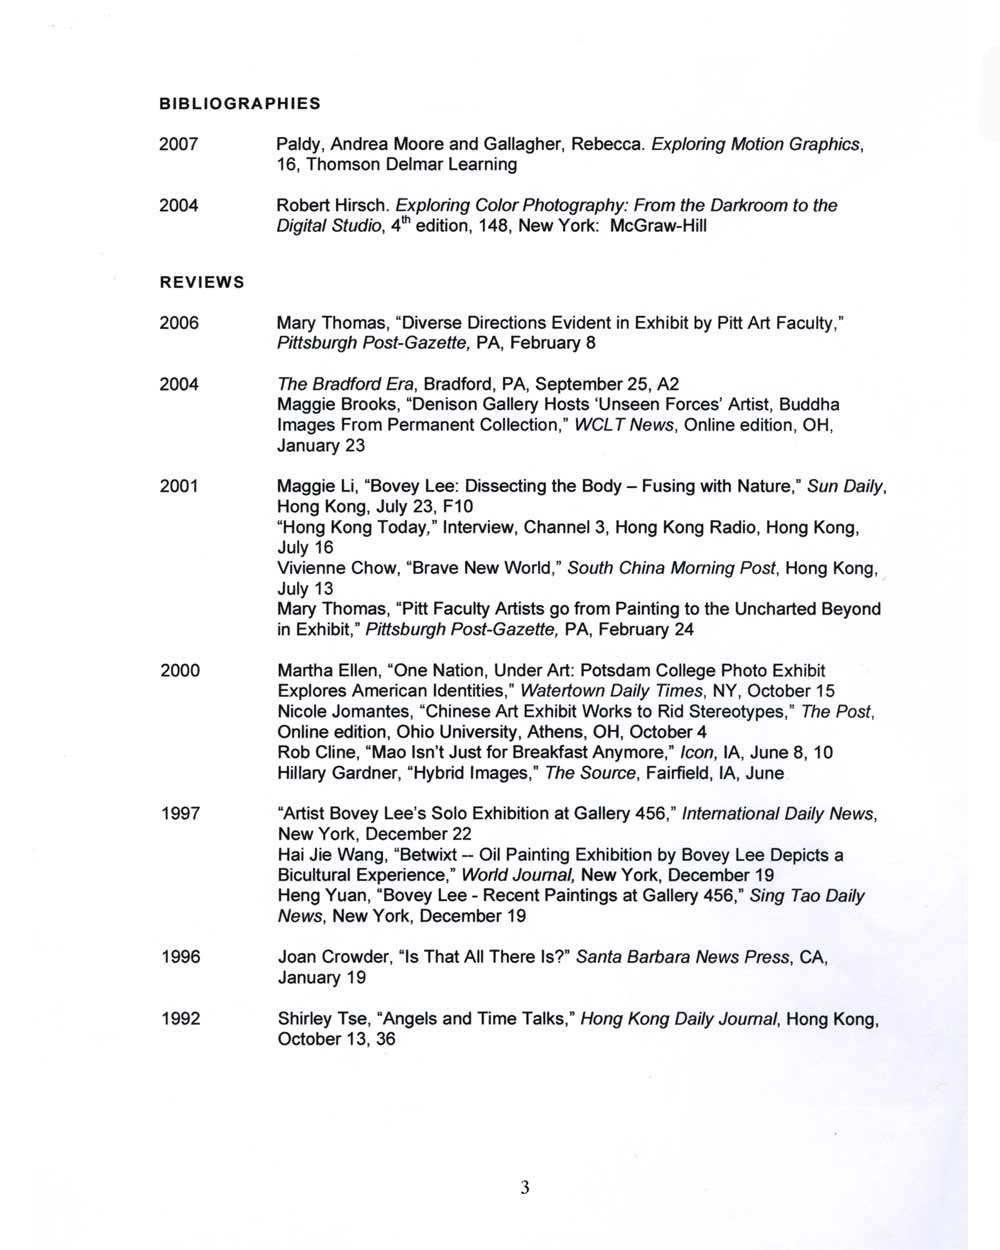 Bovey Lee's Resume, pg 3